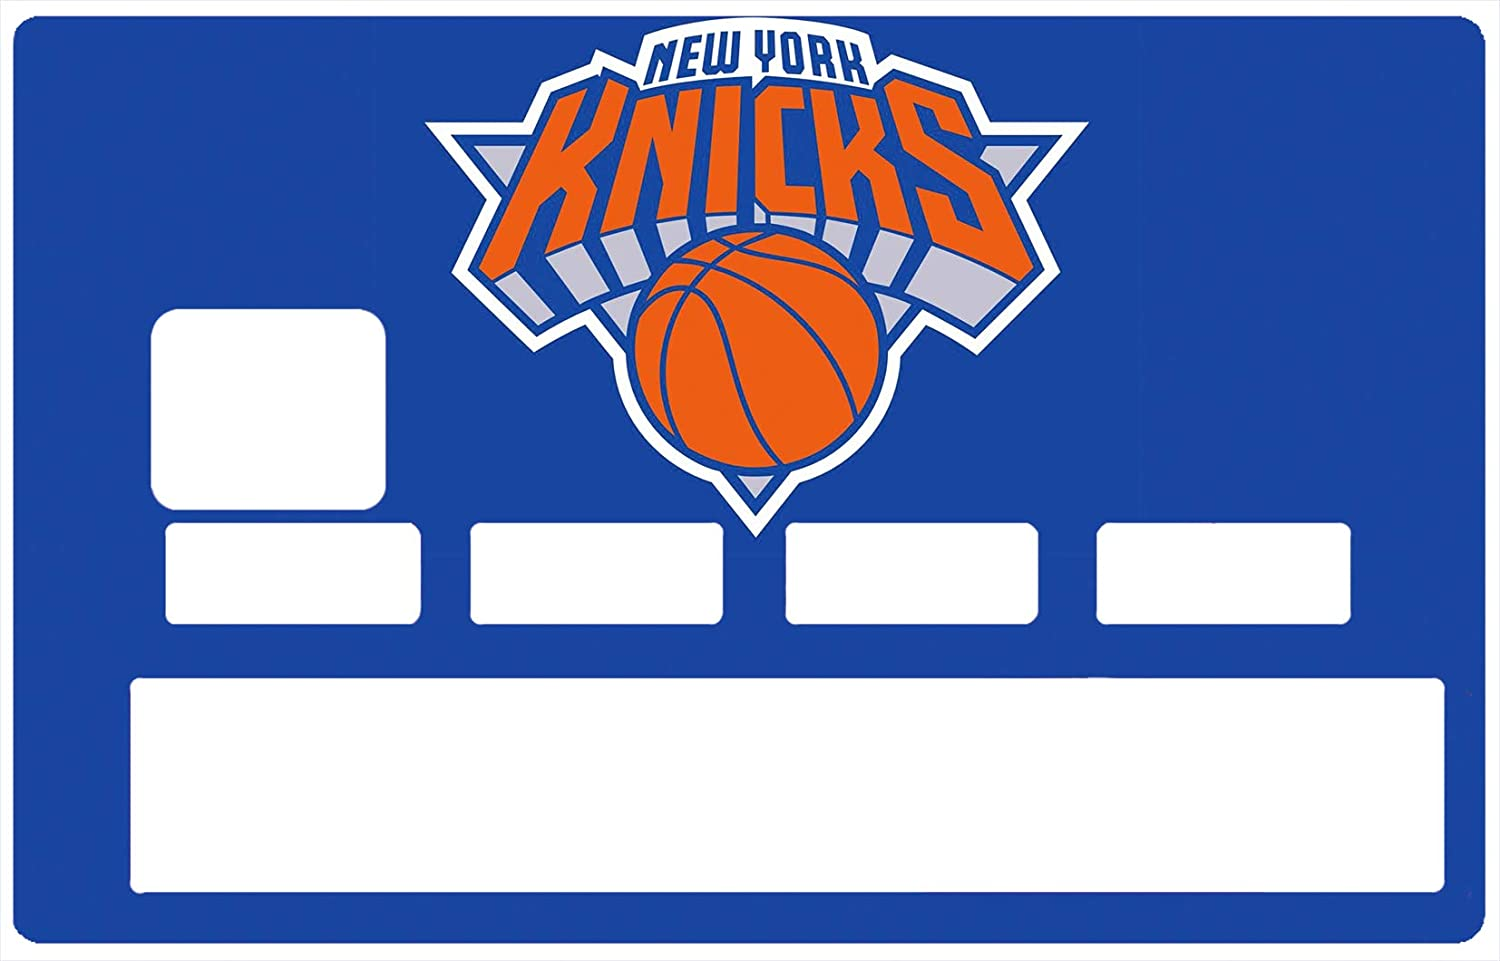 This is a photo of Knicks Printable Schedule for york knicks game